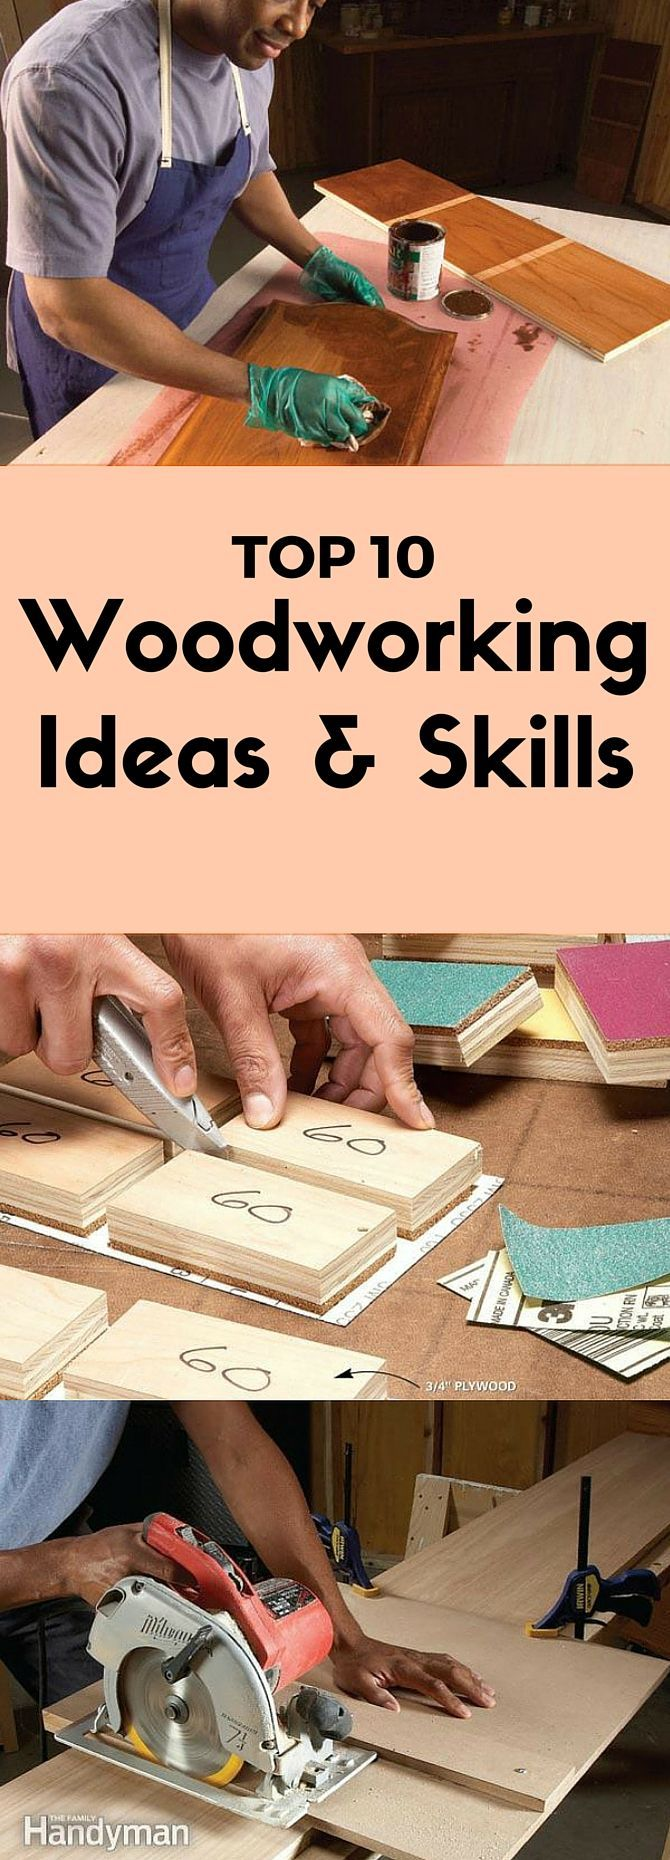 the top 10 woodworking ideas